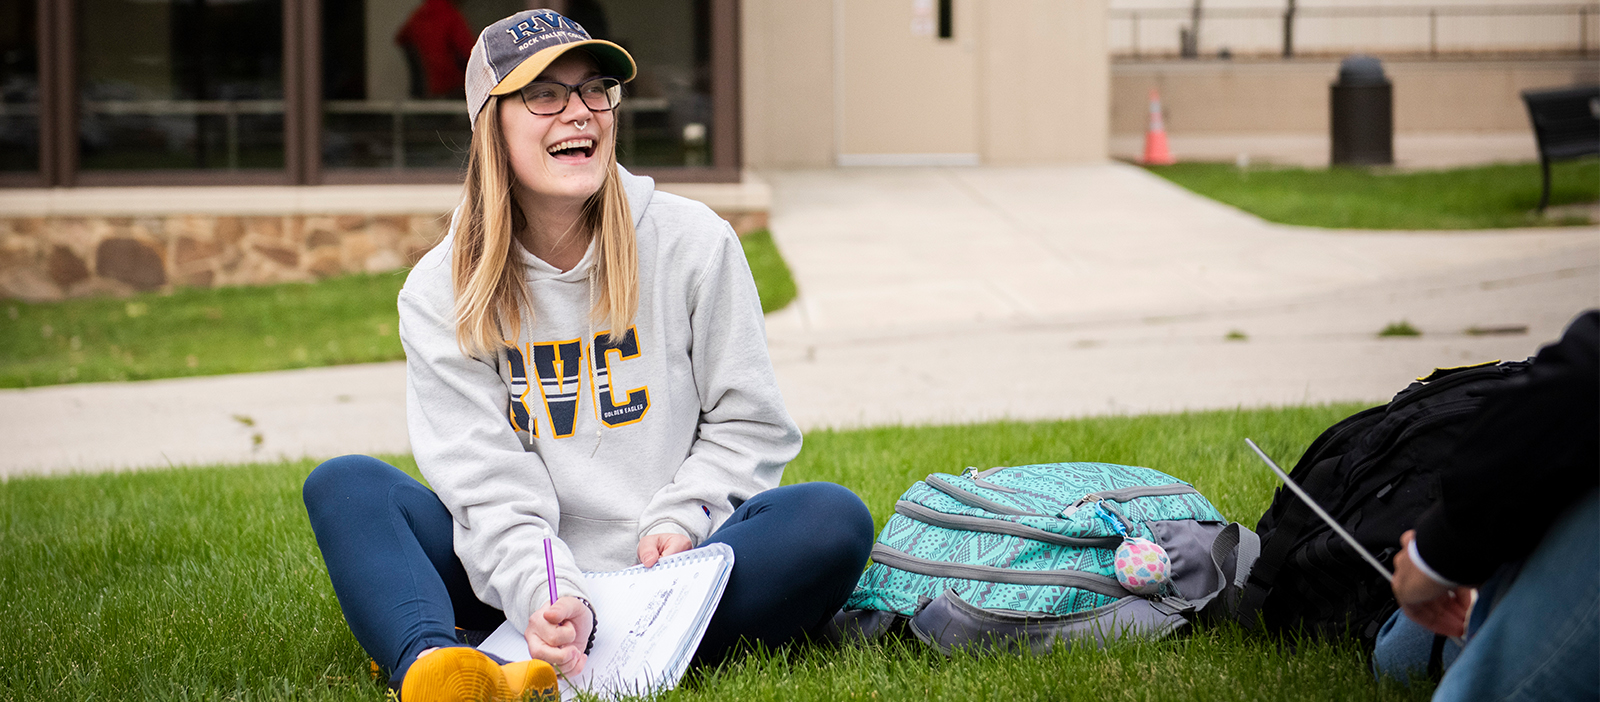 It's not too late to start or continue your journey with RVC! Join us for one of several last chance registration events over the next two weeks before classes start on August 17, 2020.